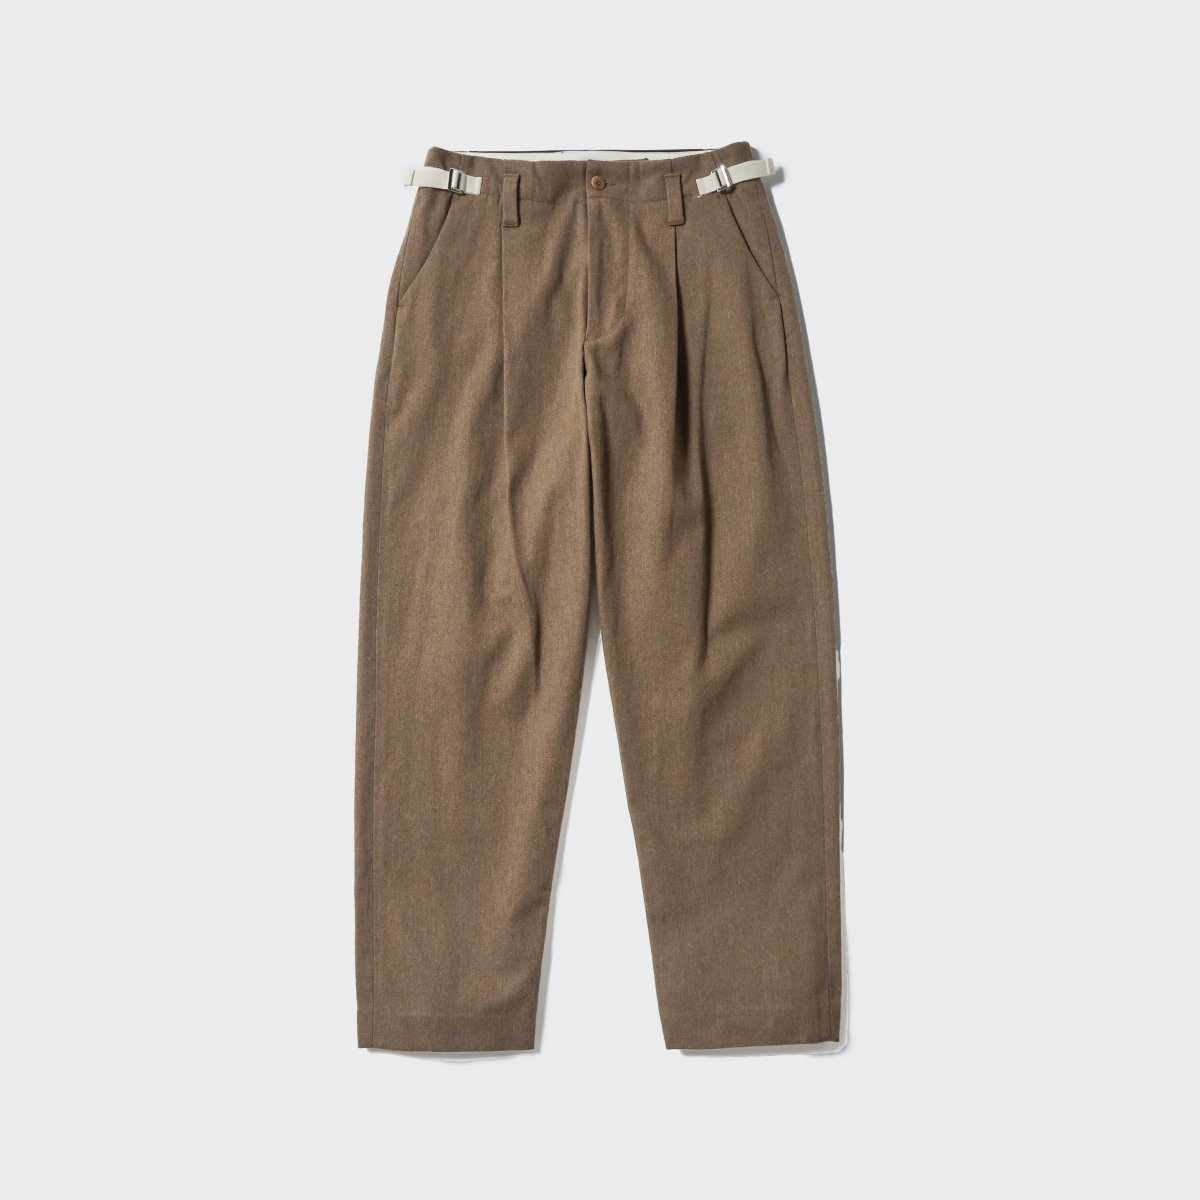 <img class='new_mark_img1' src='https://img.shop-pro.jp/img/new/icons5.gif' style='border:none;display:inline;margin:0px;padding:0px;width:auto;' />【2021AW】ARMY CLOTH TAPARED PT | BEIGE